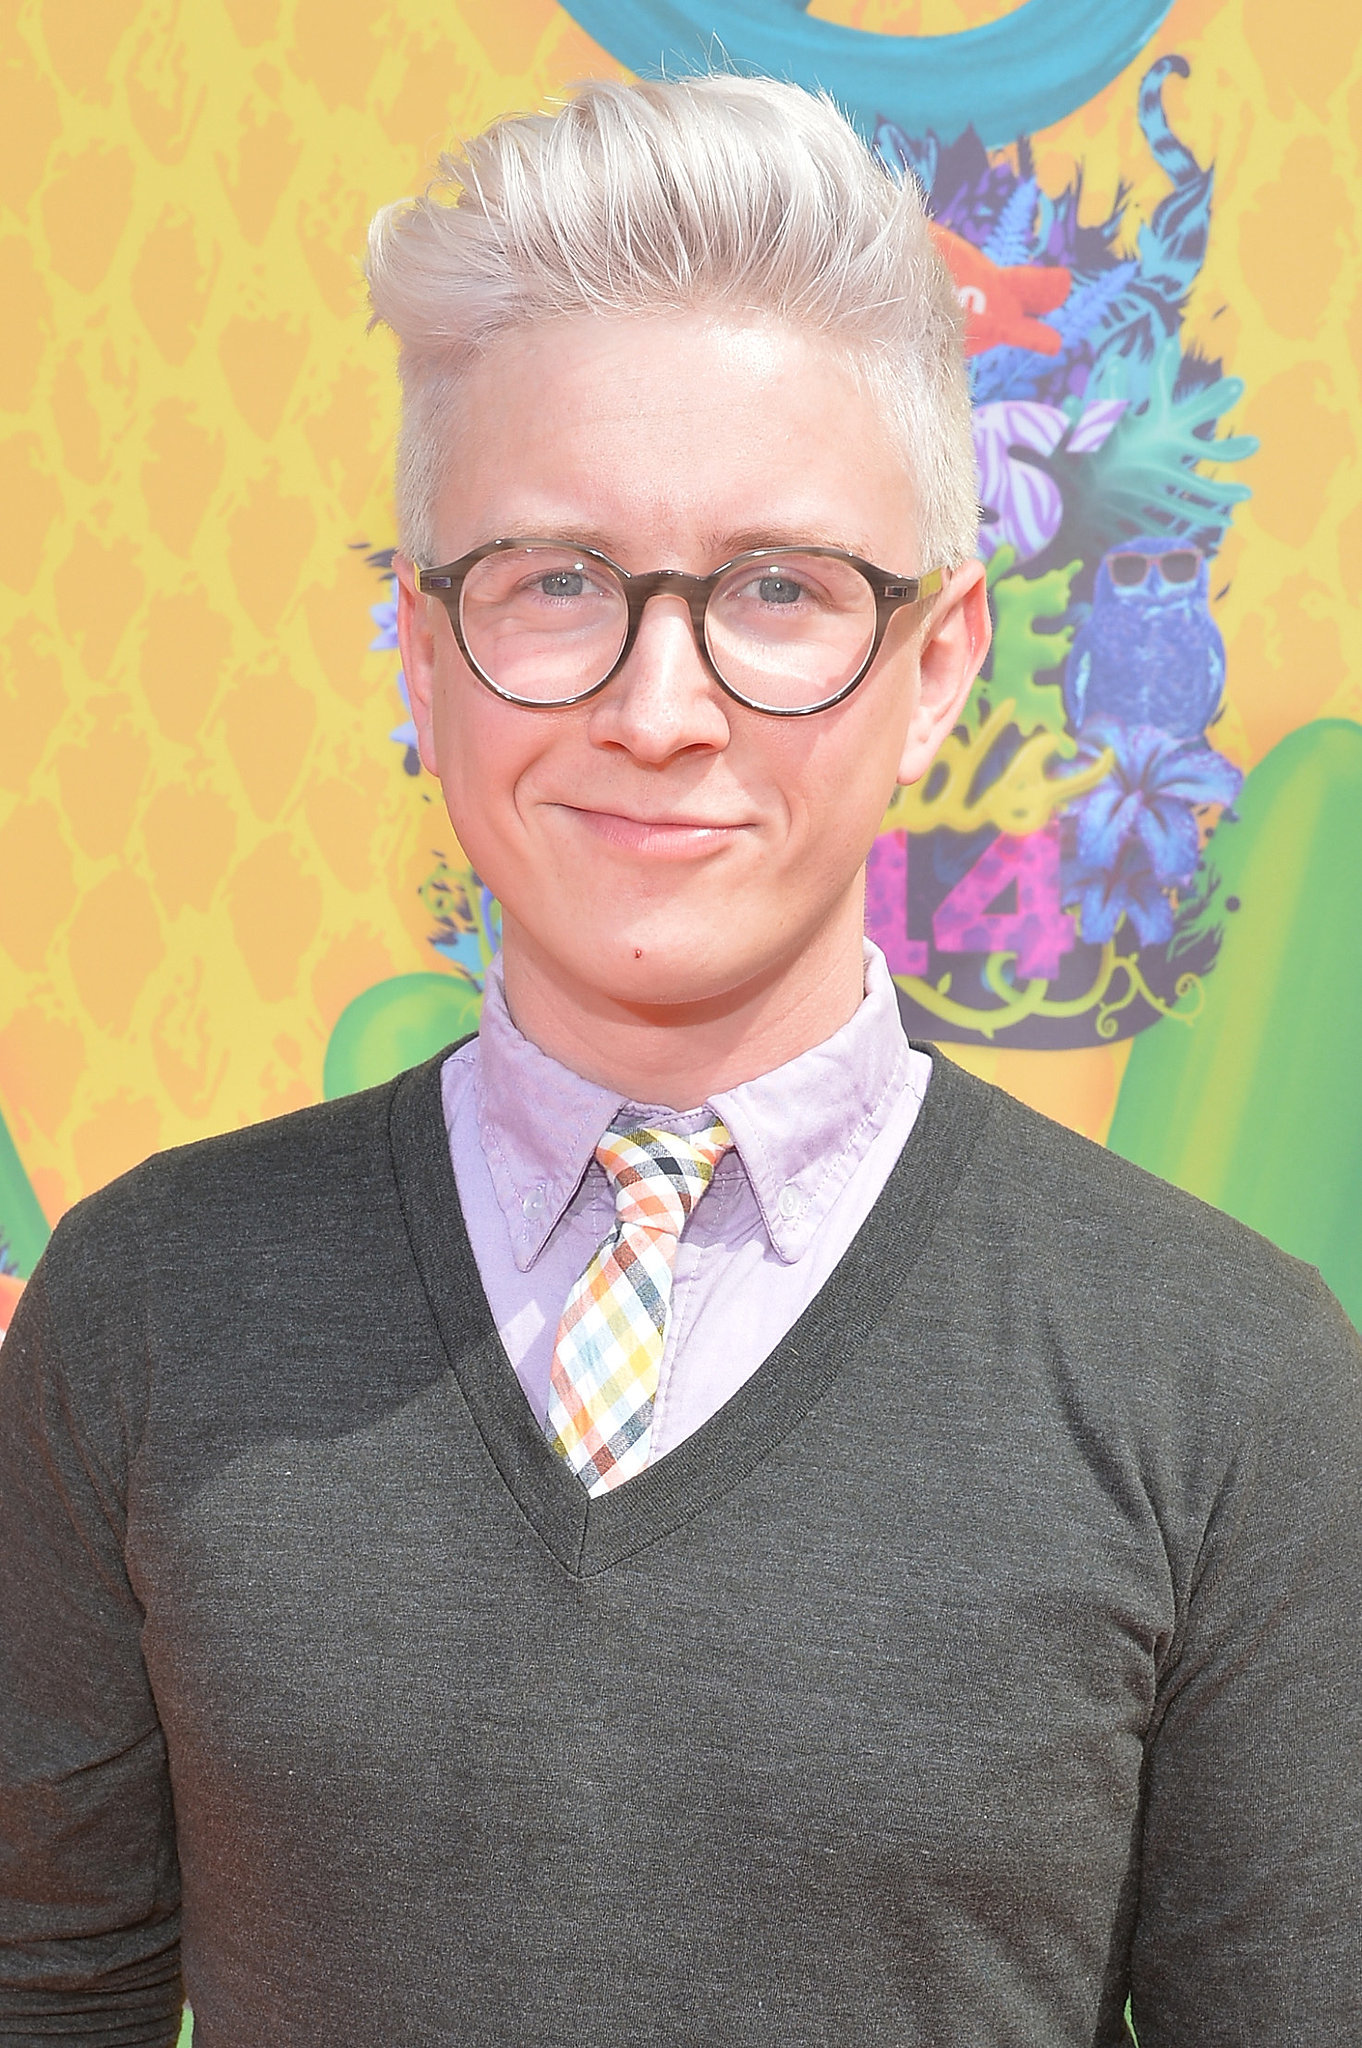 YouTube personality and POPSUGAR's Top That cohost Tyler Oakley brought his frames along.